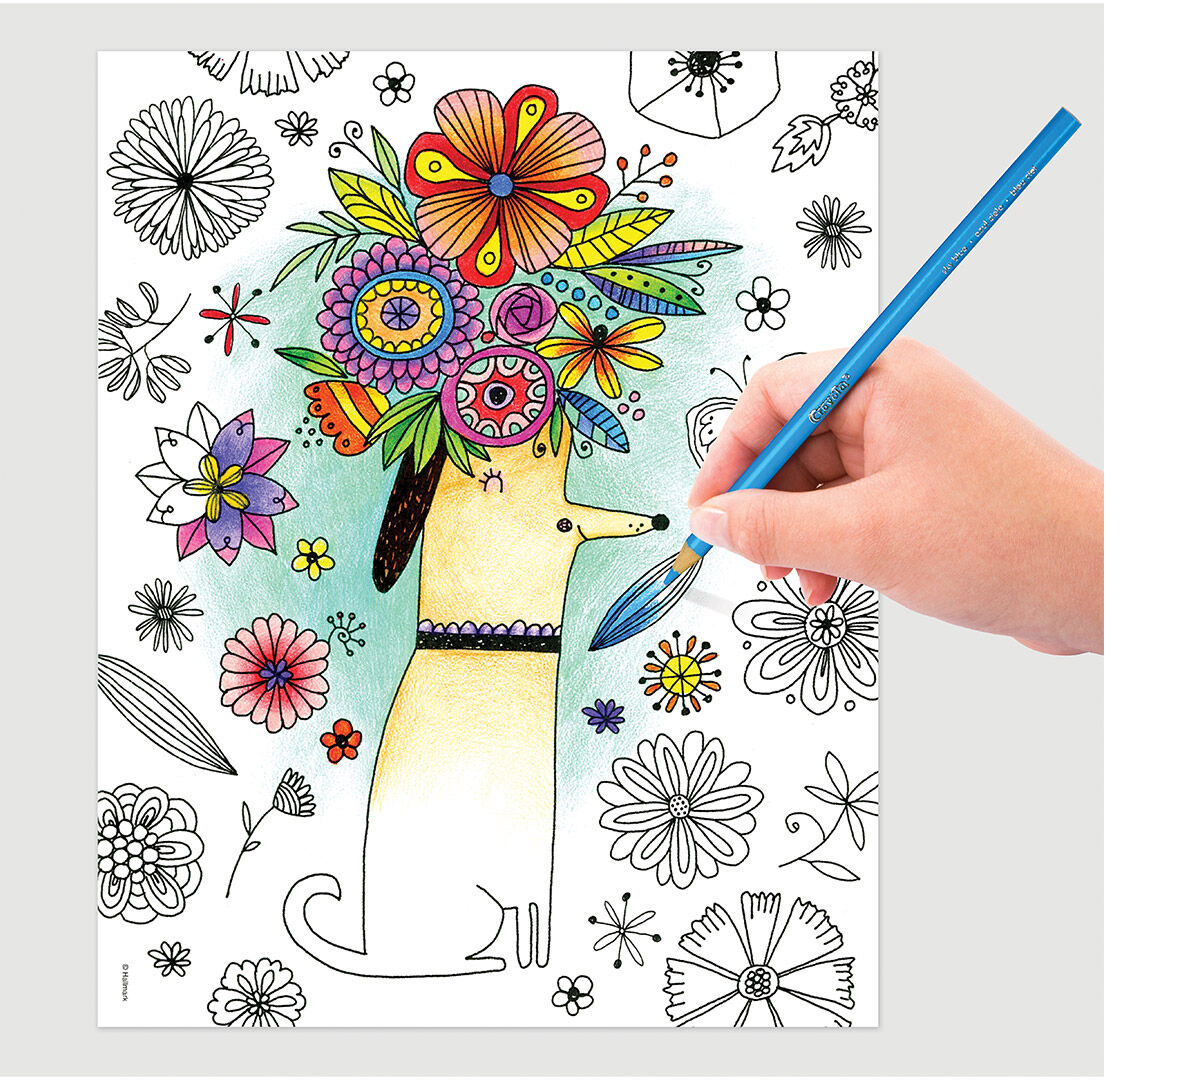 Crayola Whimsical Escapes Adult